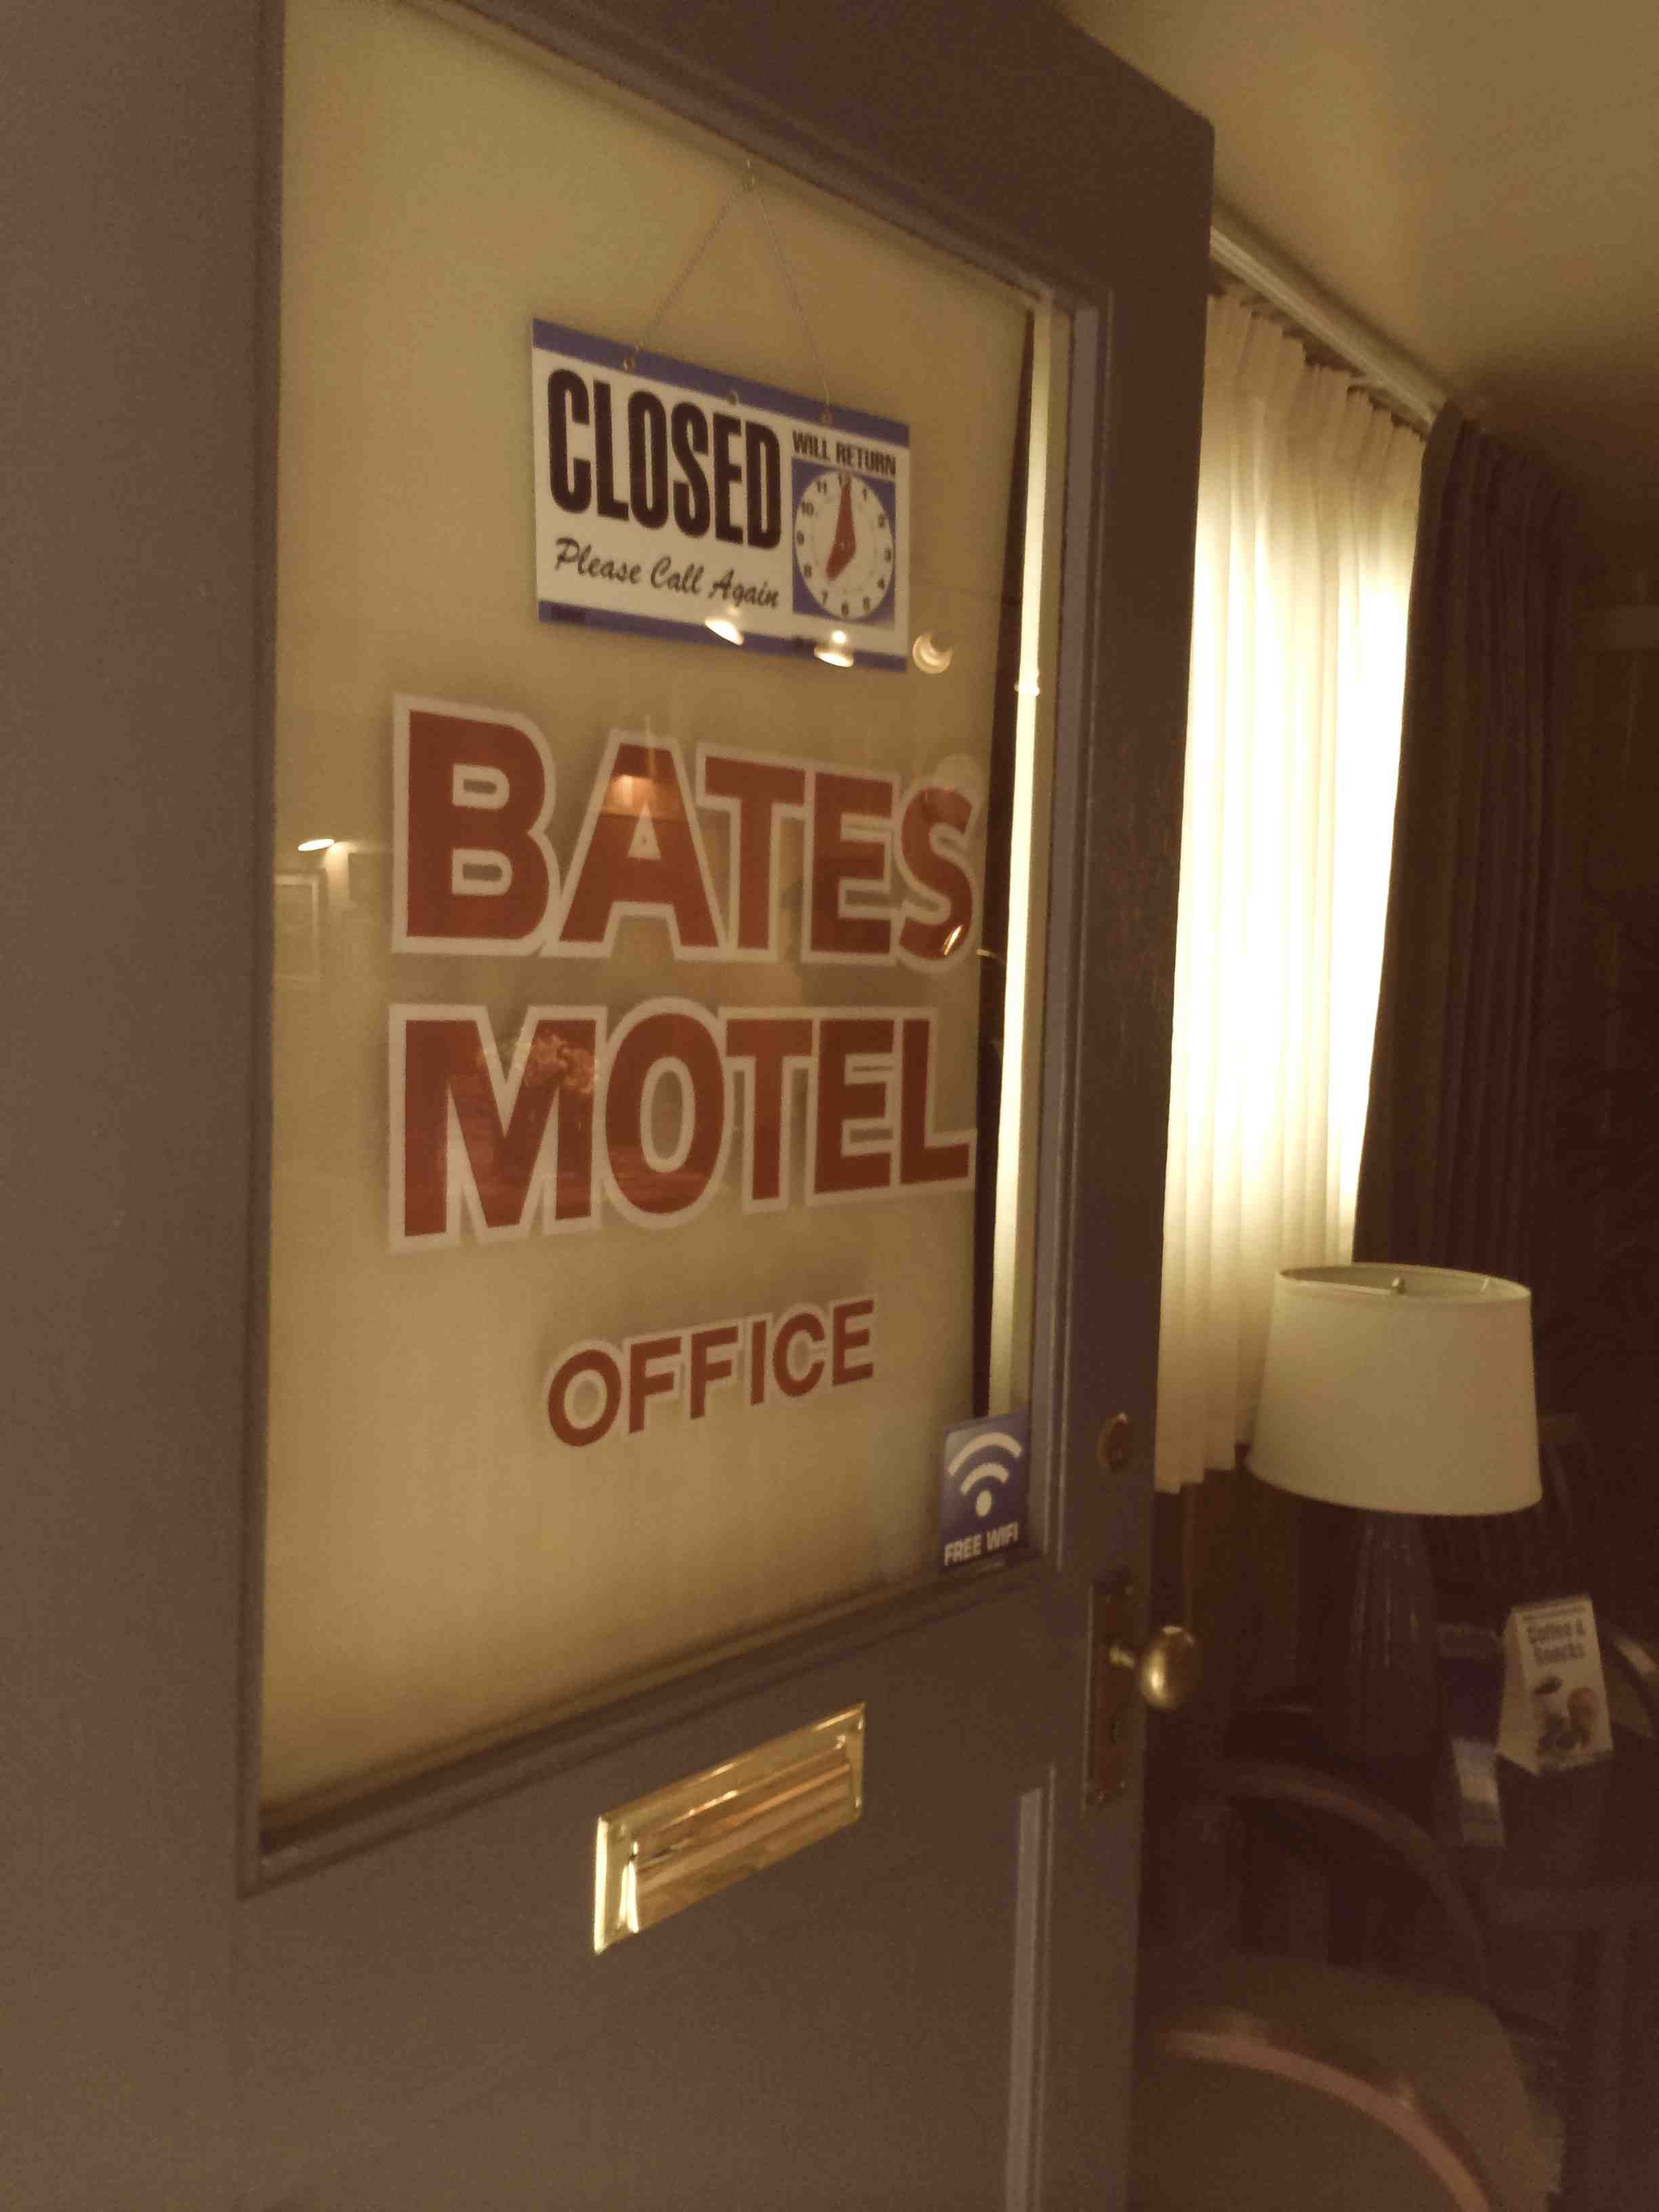 If you're in Oregon, spend a night at BatesMotel.